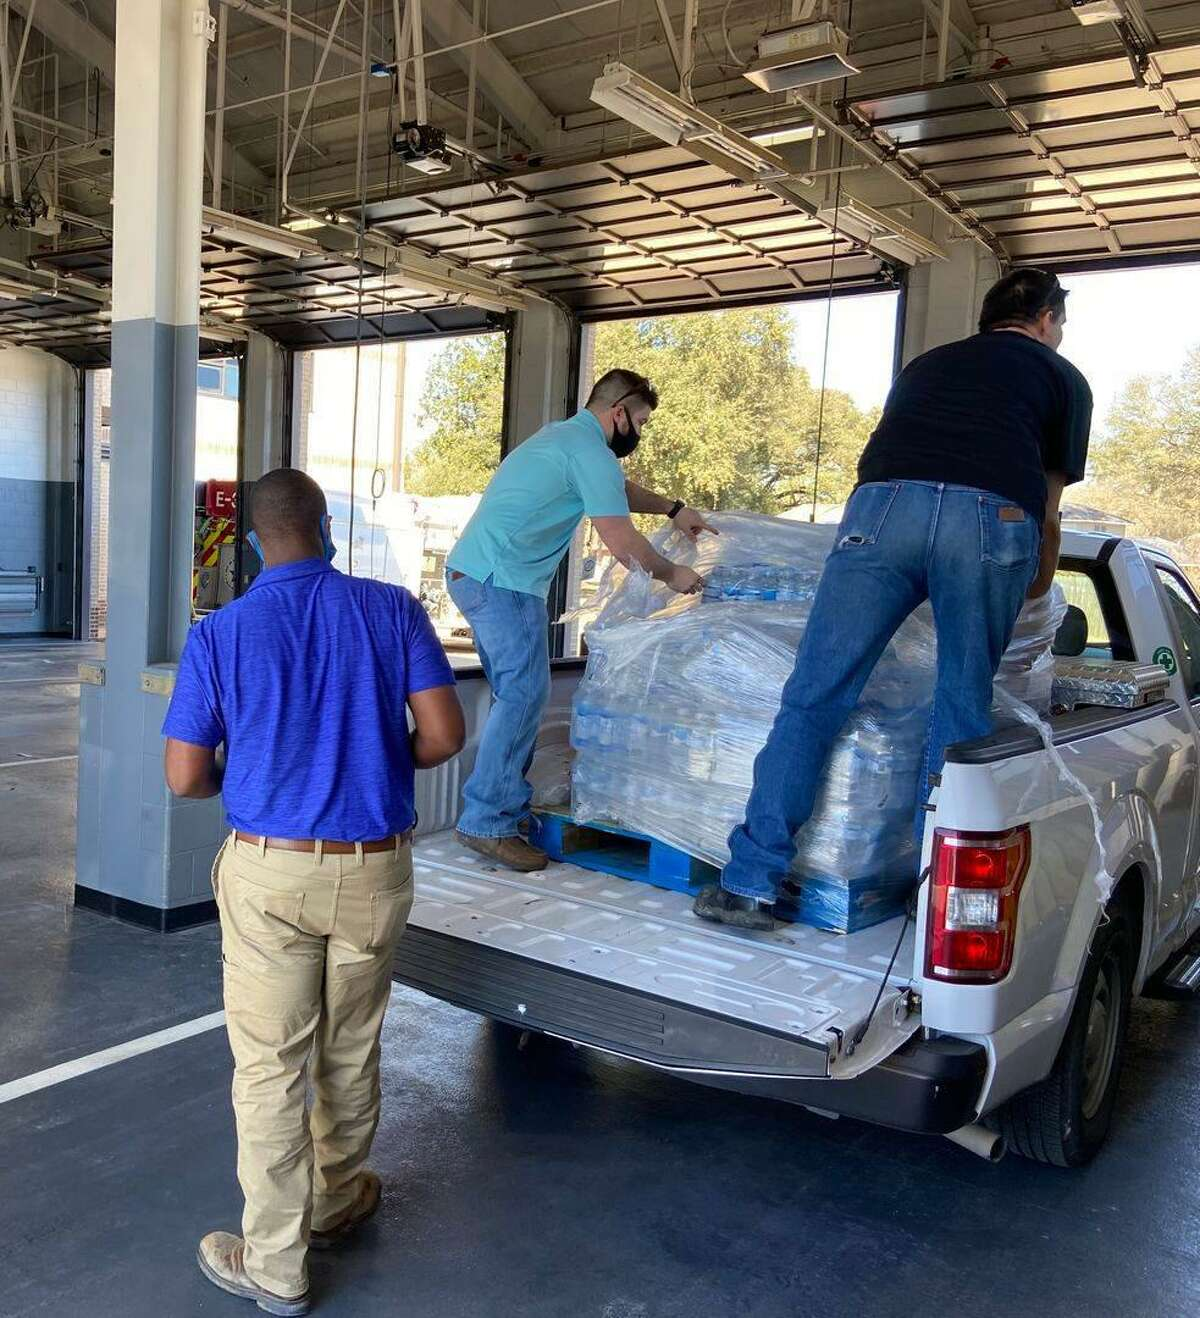 Jersey Village city staff spoke highly of the help from local residents, public works and others for supplying water, sanitizing water and more.